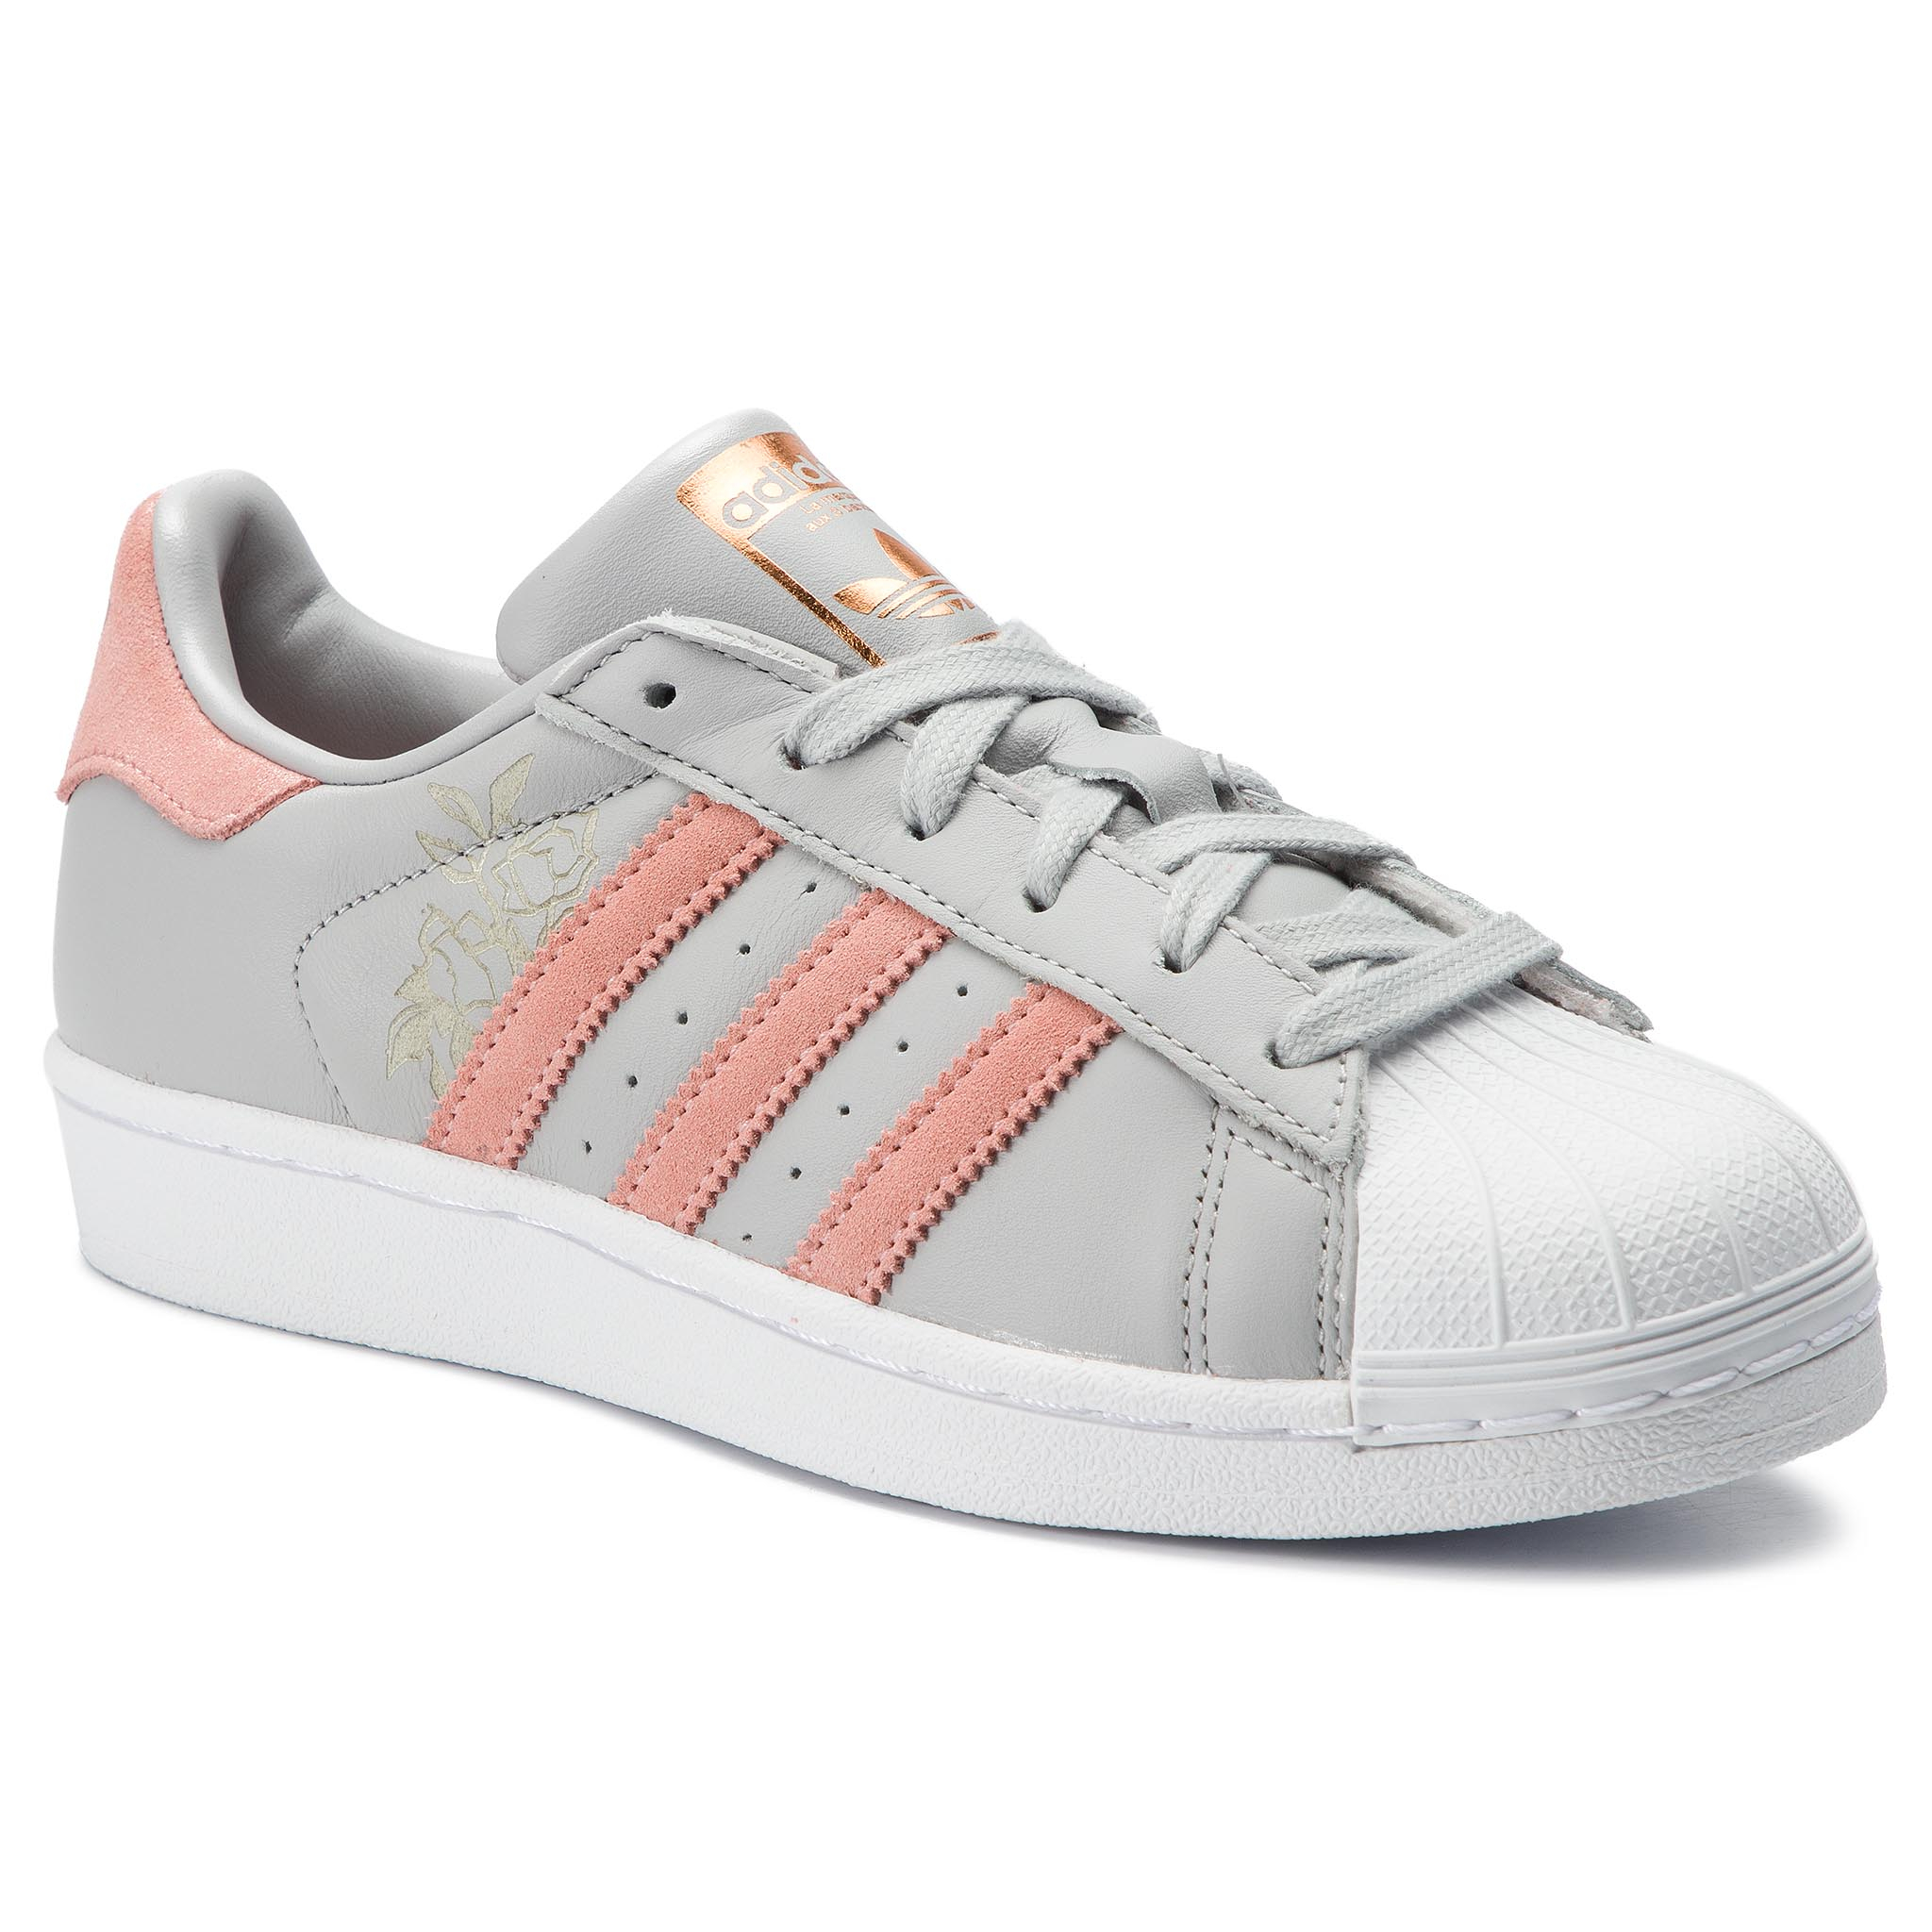 1867803a Shoes adidas - Superstar G27808 Cblack/Ashgre/Ftwwht - Sneakers ...